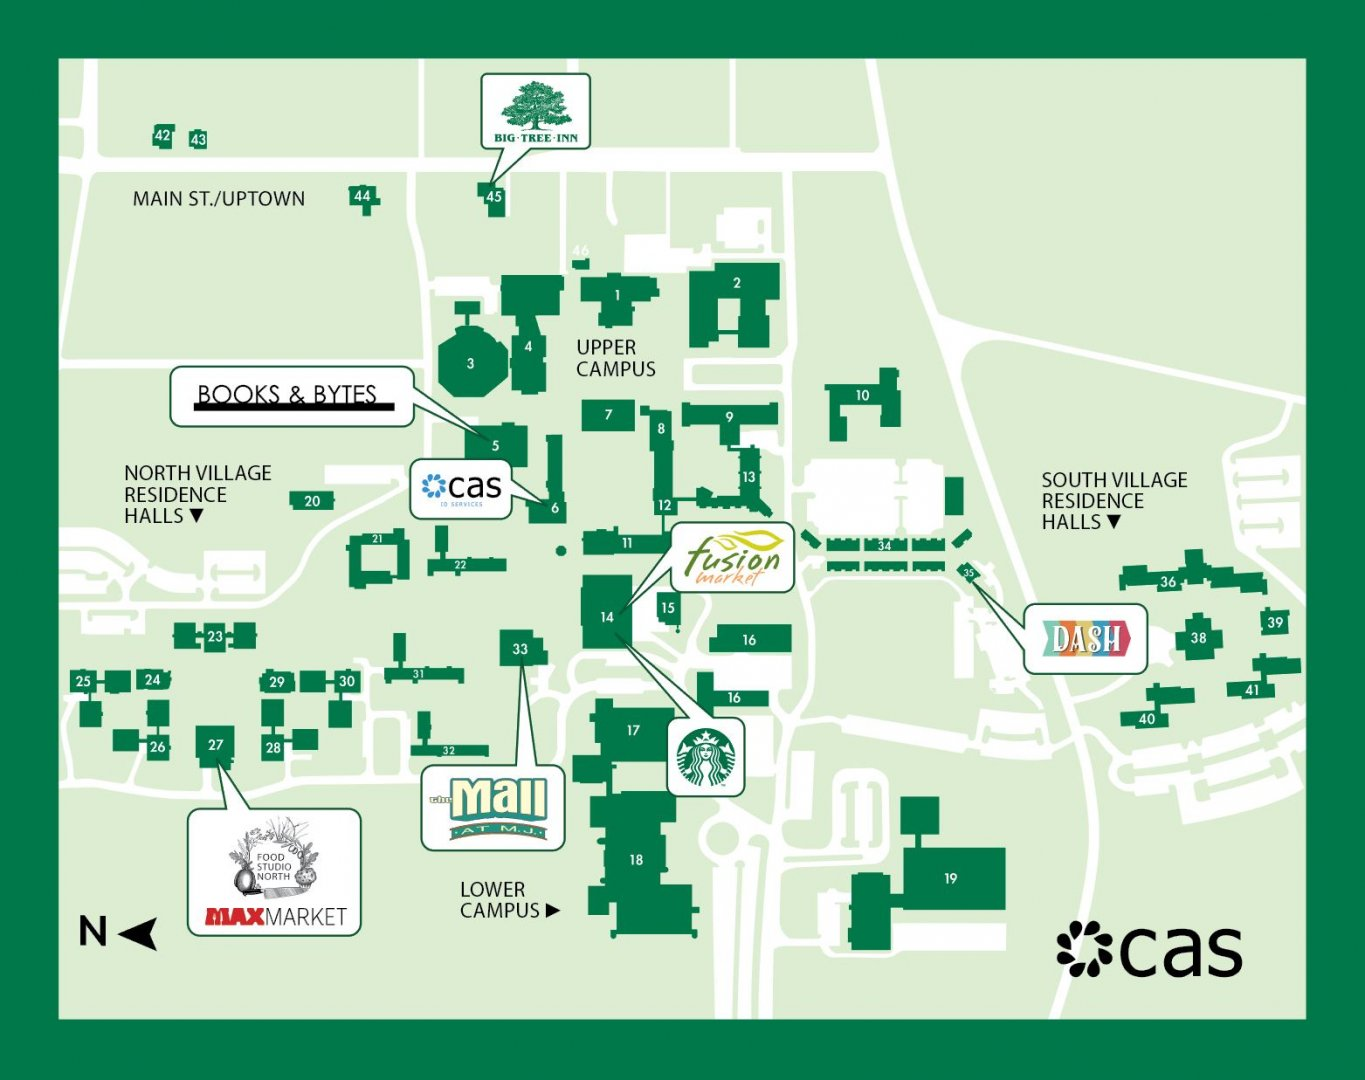 campus map of restaurants